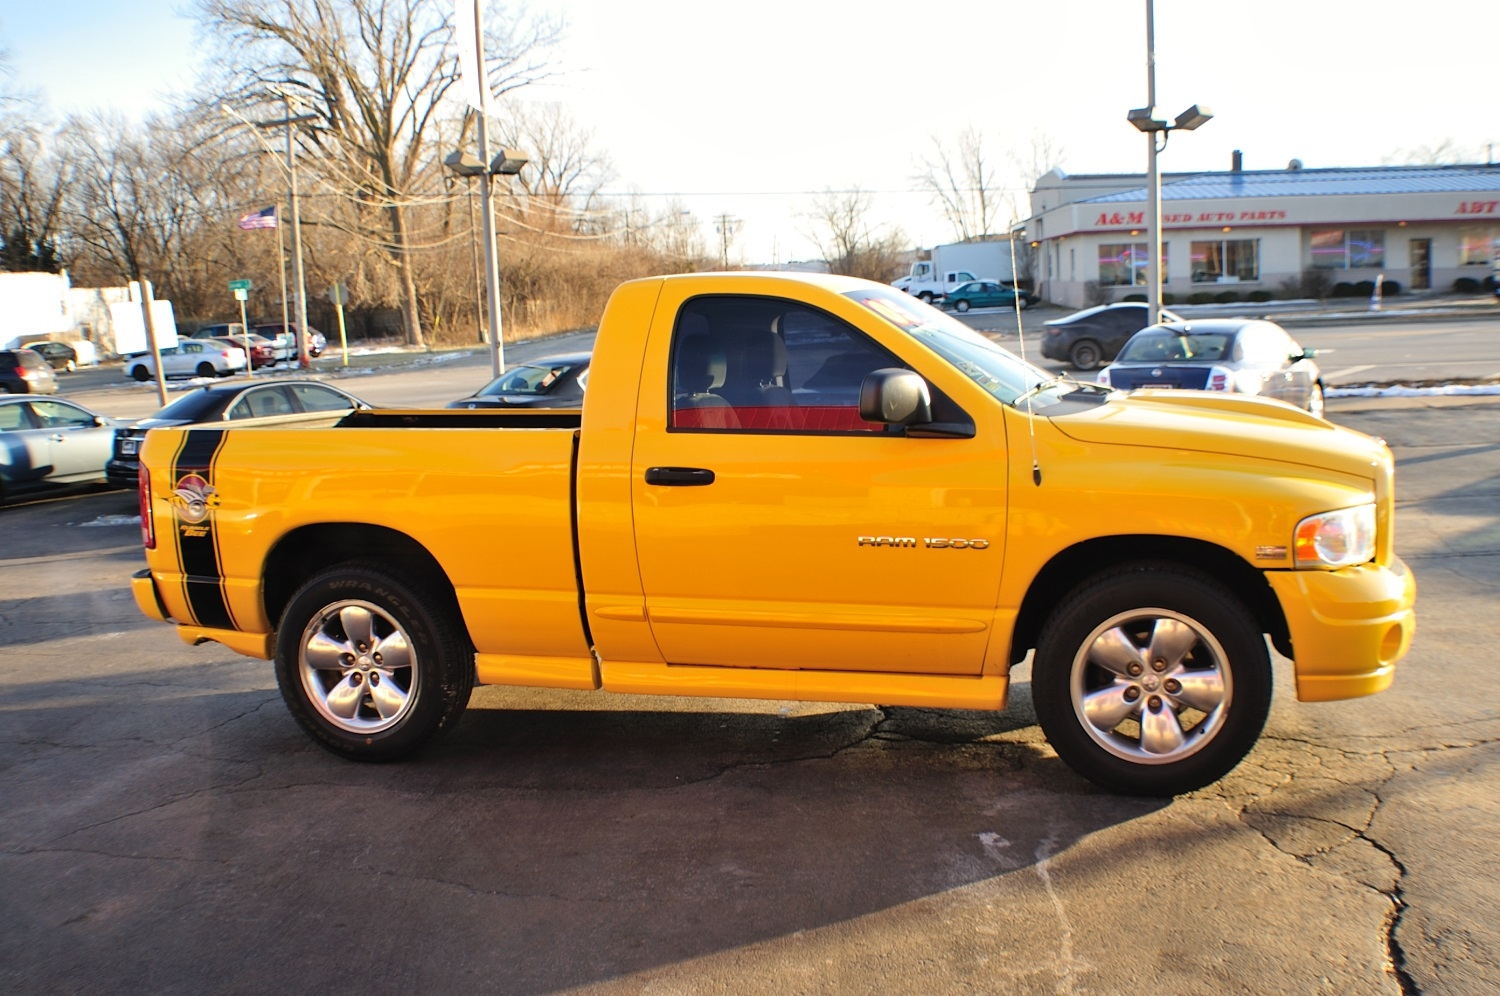 2005 Dodge Ram Yellow Rumble Bee used truck sale Bannockburn Barrington Beach Park